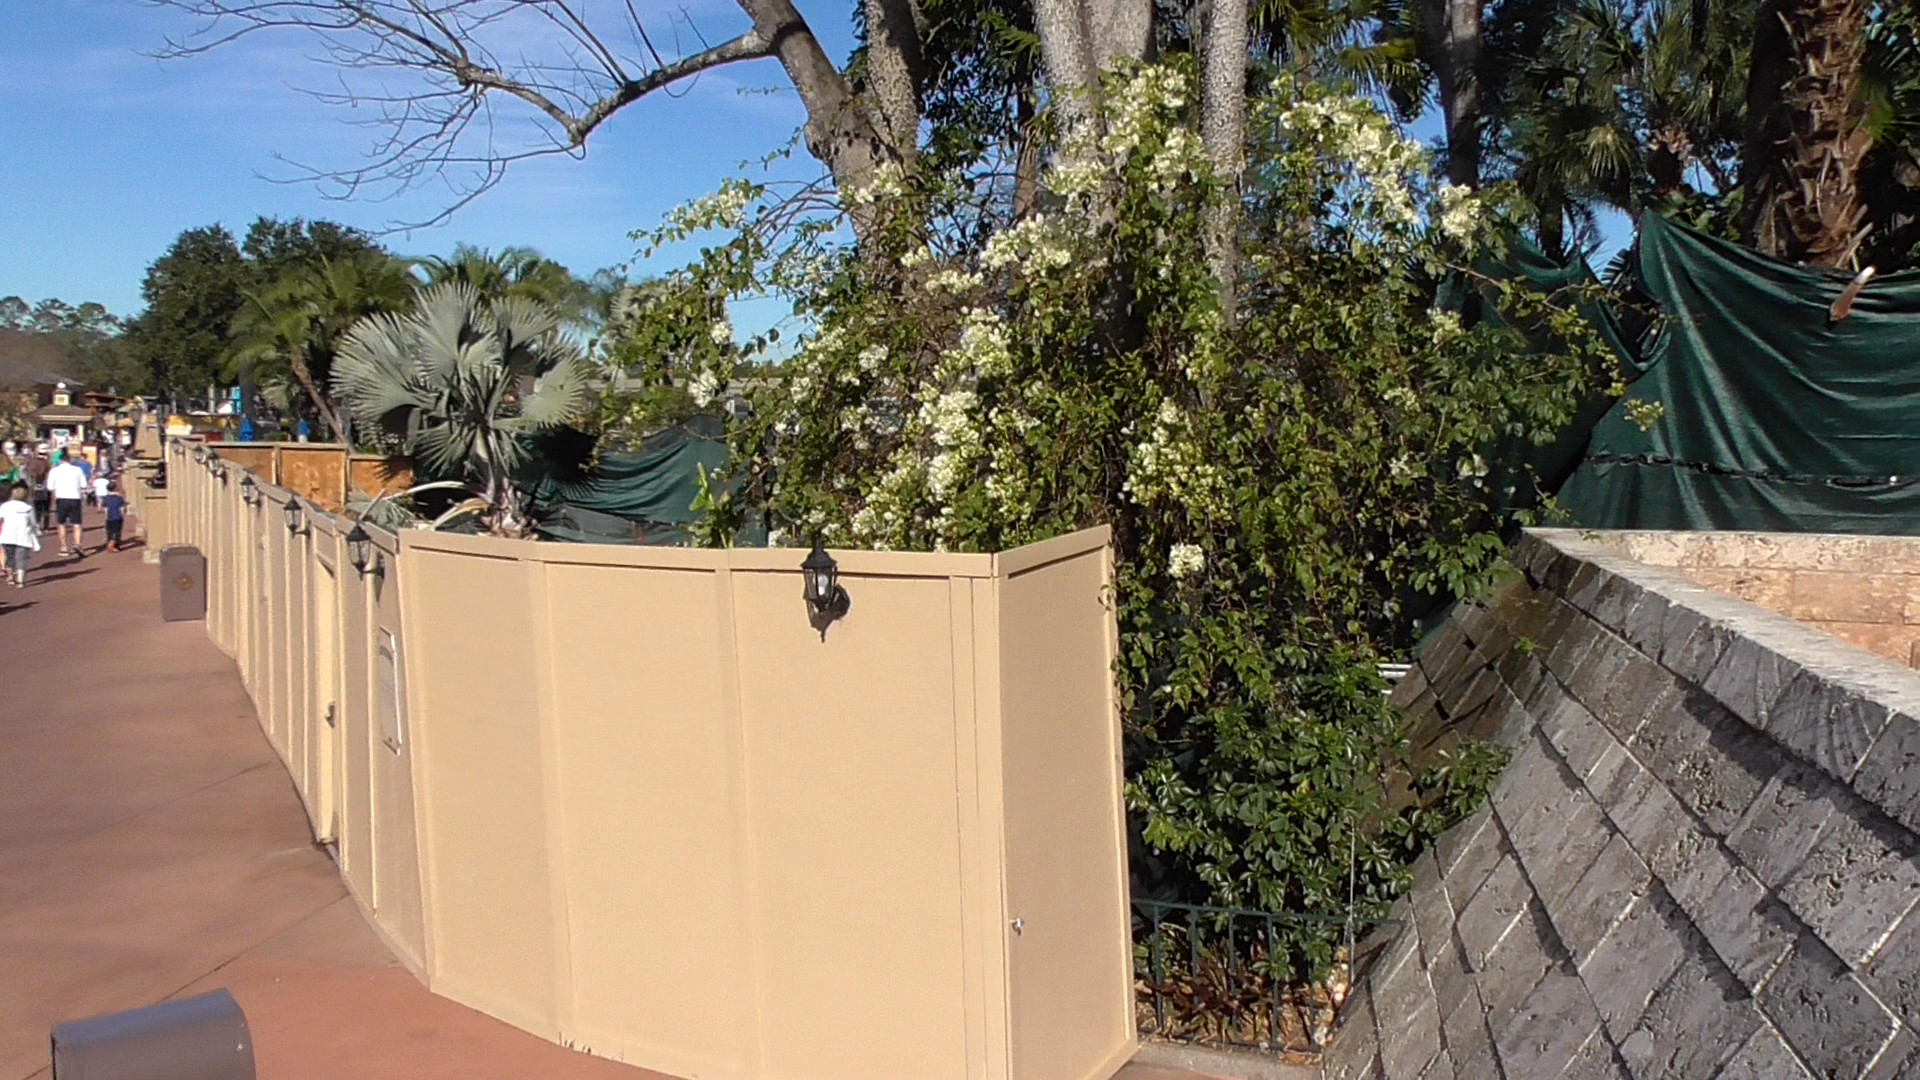 Epcot update flower garden preparations festival of the arts ending and choza tequila - Gardening works in october winter preparations ...